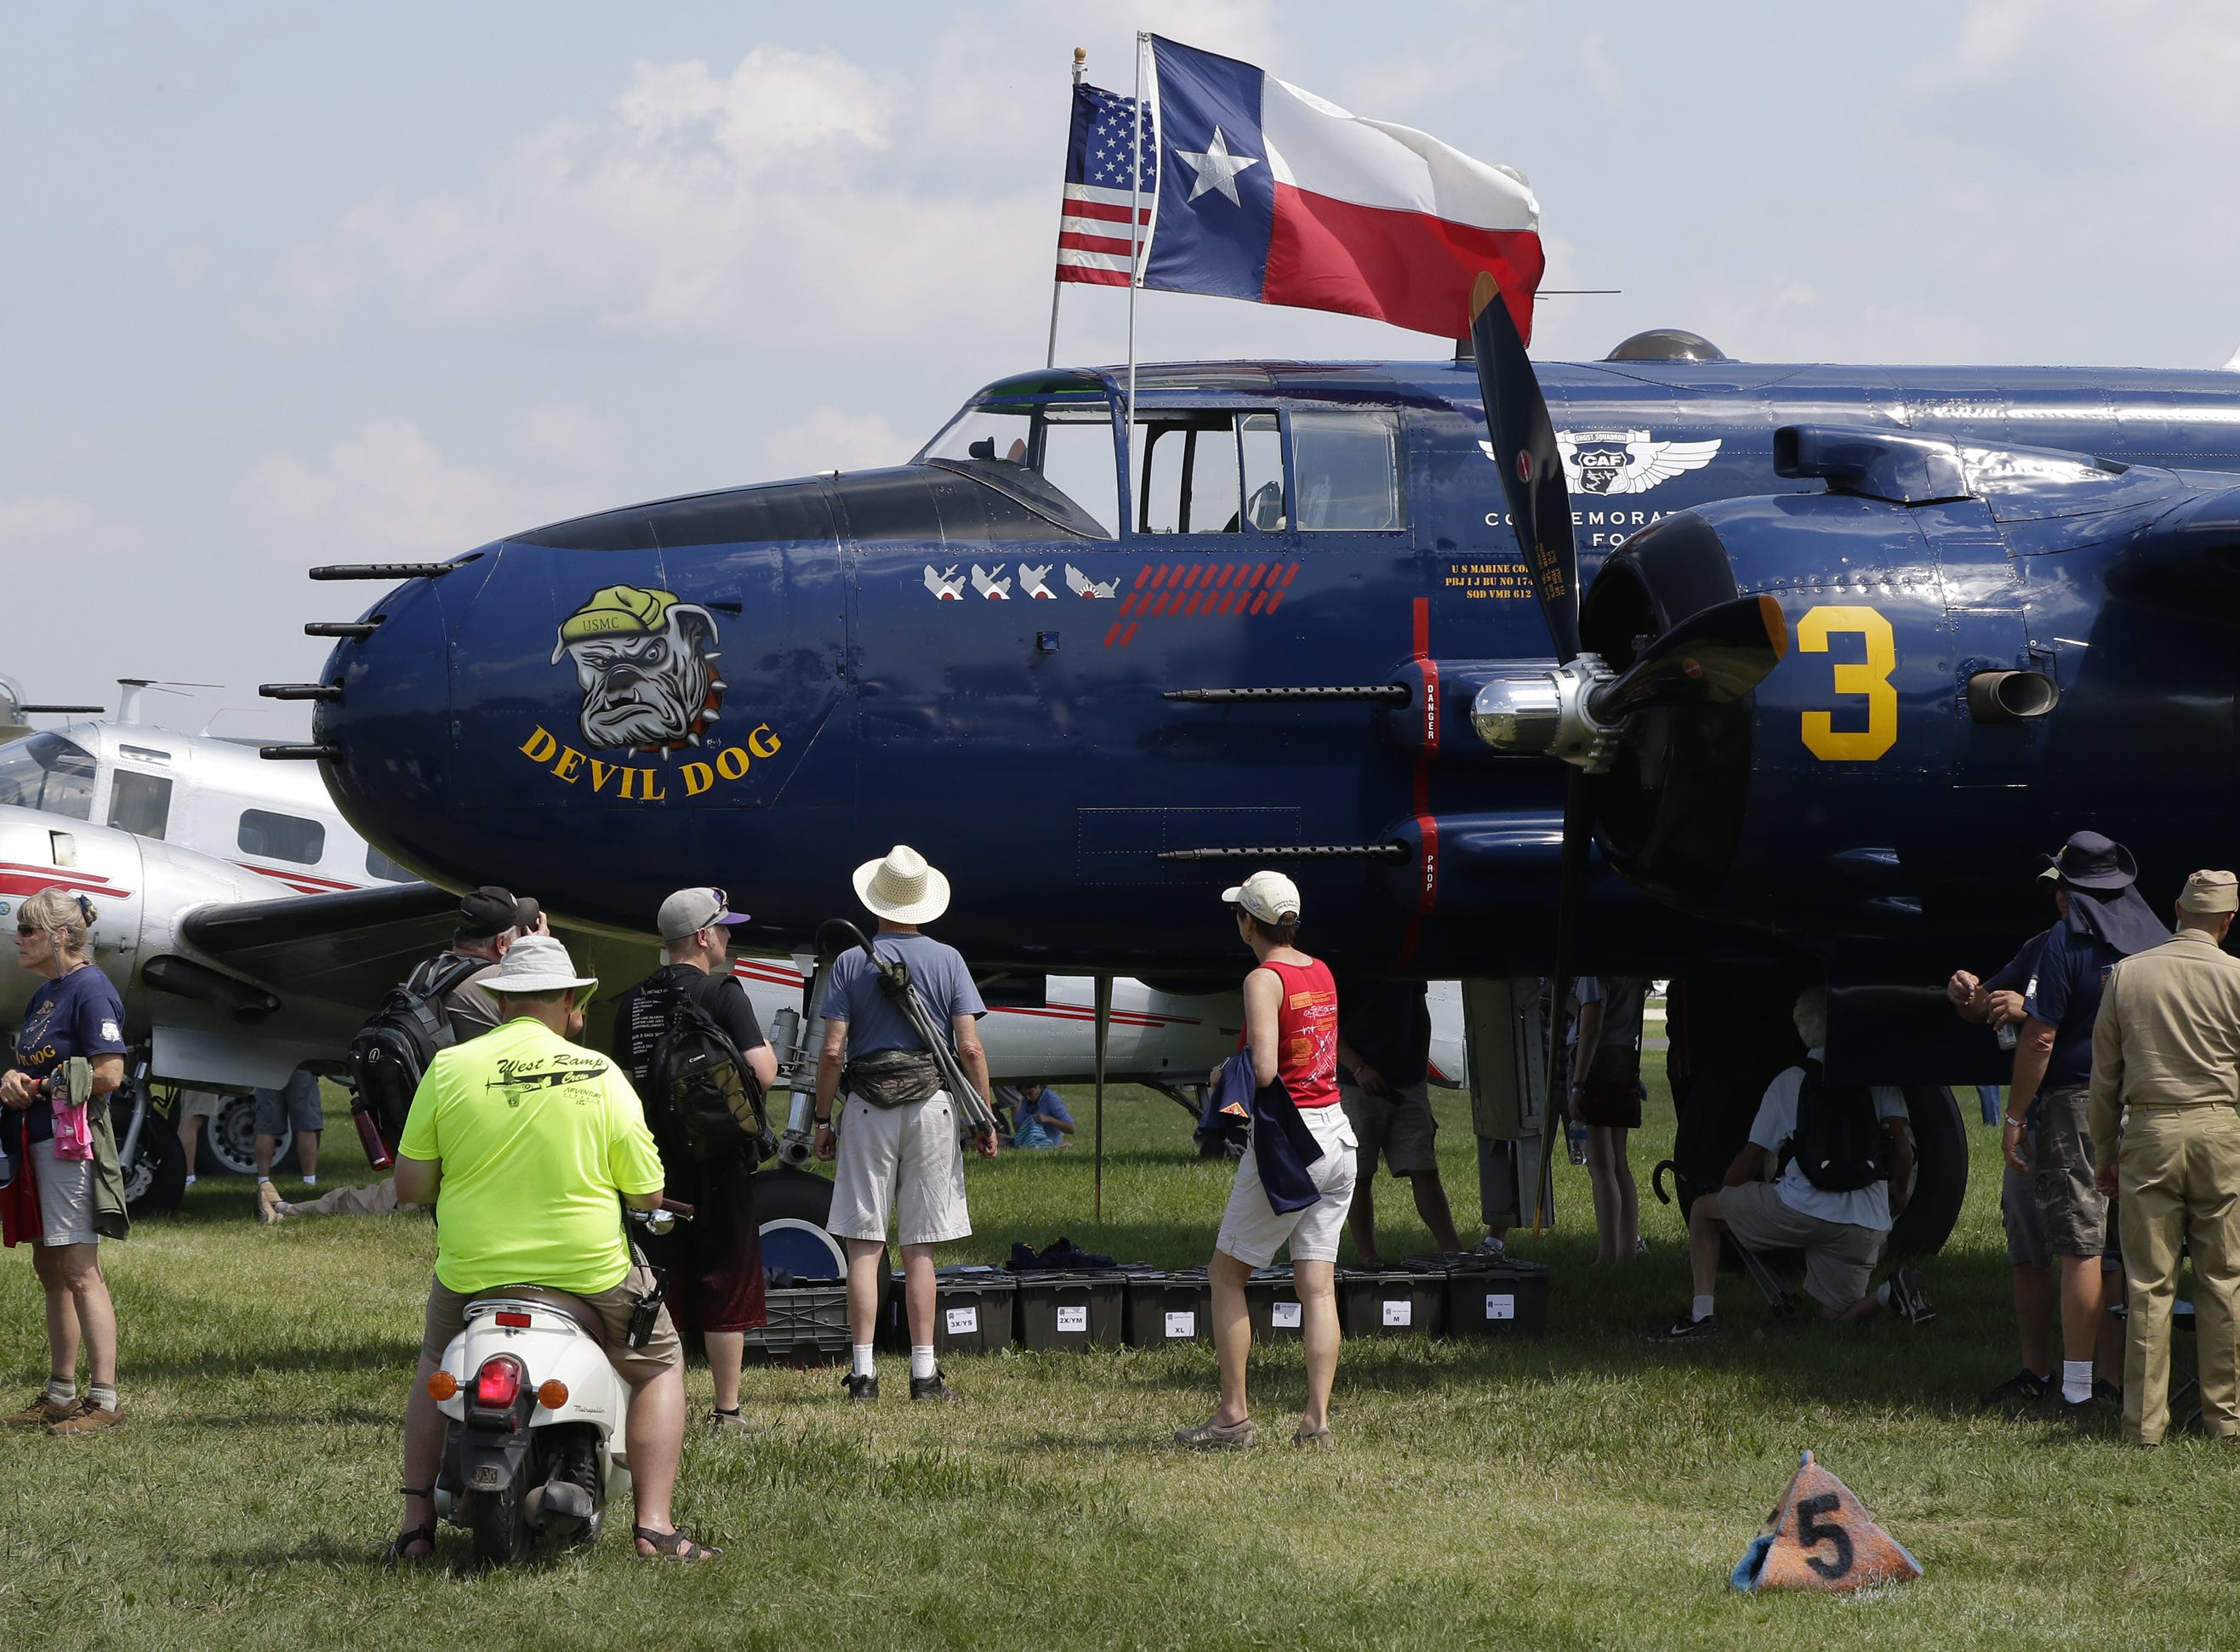 The Devil Dog a PB-1J Doolittle Raider attracted a crowd on the warbird area, Tuesday, July 24, 2018, in Oshkosh, Wis.  The 66th annual Experimental Aircraft Association Fly-In Convention, AirVenture 2018 draws over 500,000 people annually to the area.  The convention runs through July 29. Joe Sienkiewicz/USA Today NETWORK-Wisconsin